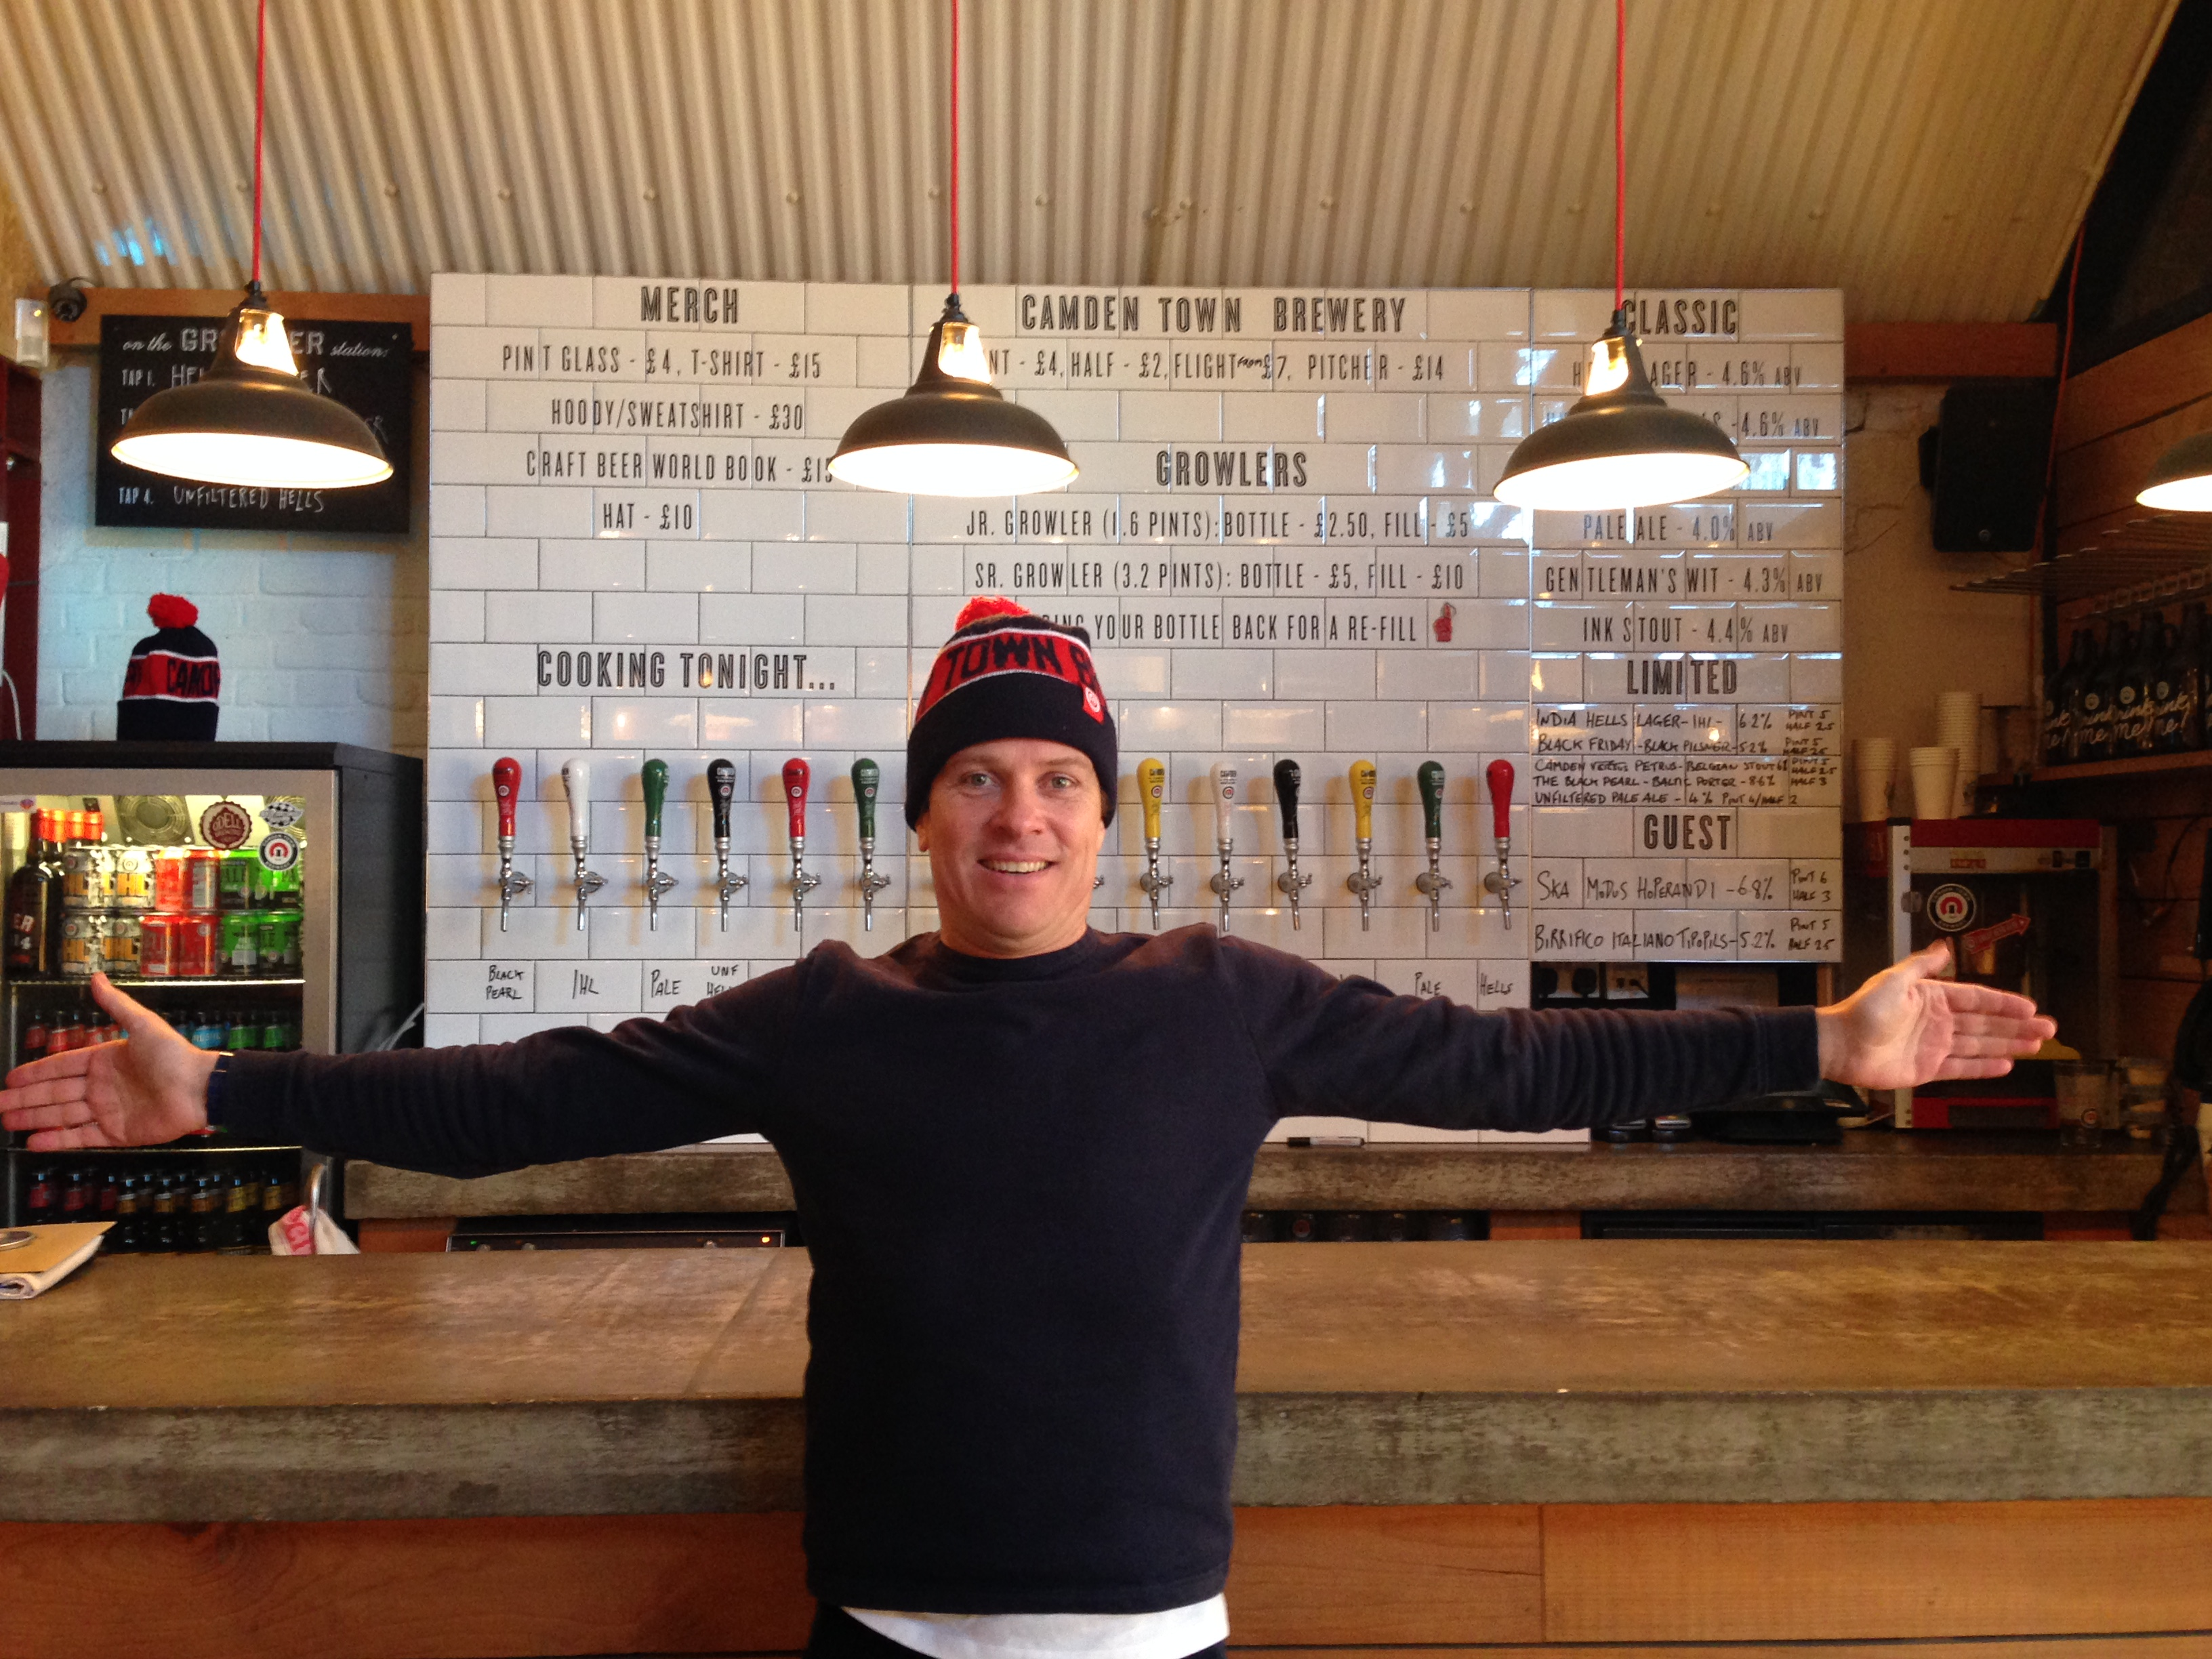 Camden Town Brewery: The London beer brand building an empire